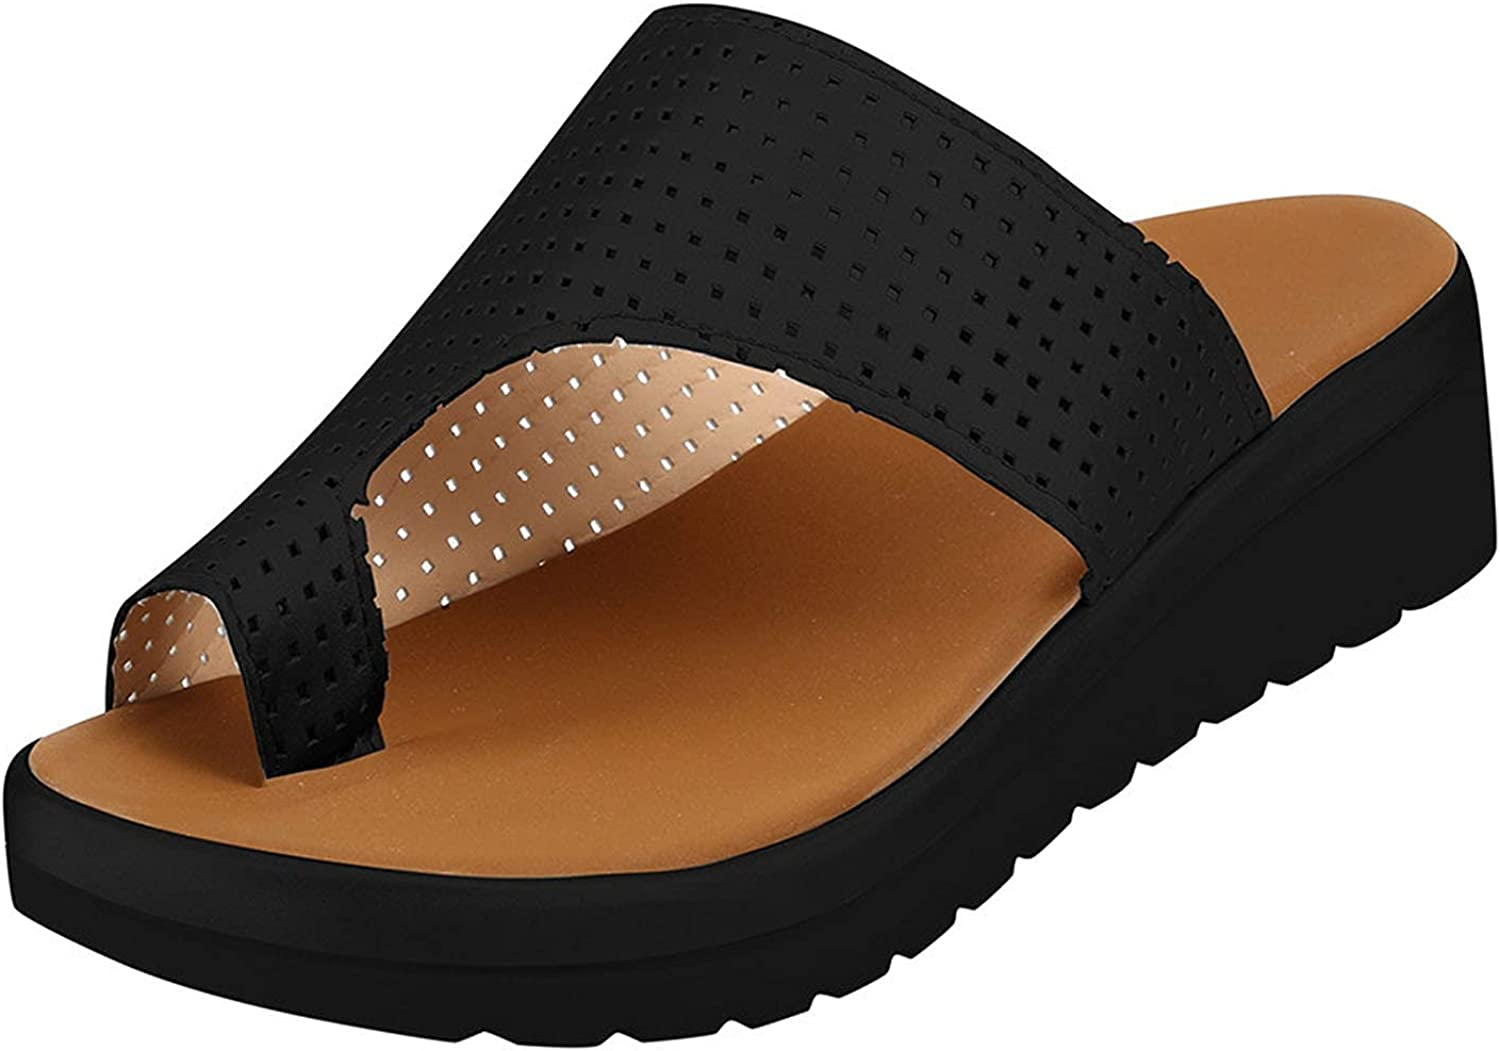 Summer Sandals for Women,Wedges Platform Wide Width Sandals Comfy Casual Beach Travel Middle Heels Shoes